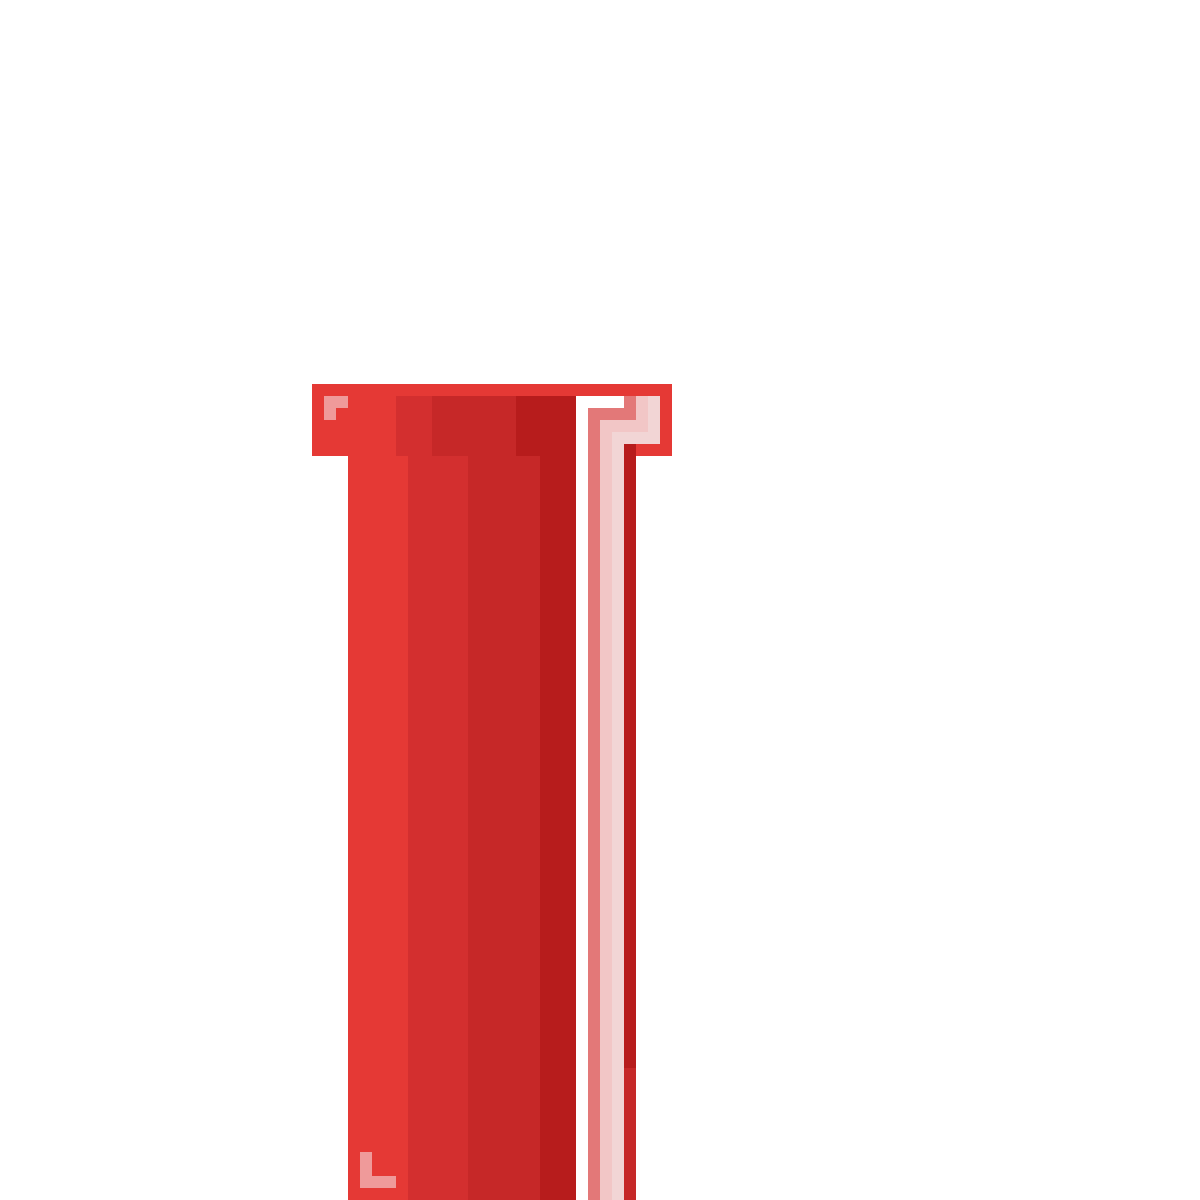 Flappy bird pipes png. Pixilart red pipe by